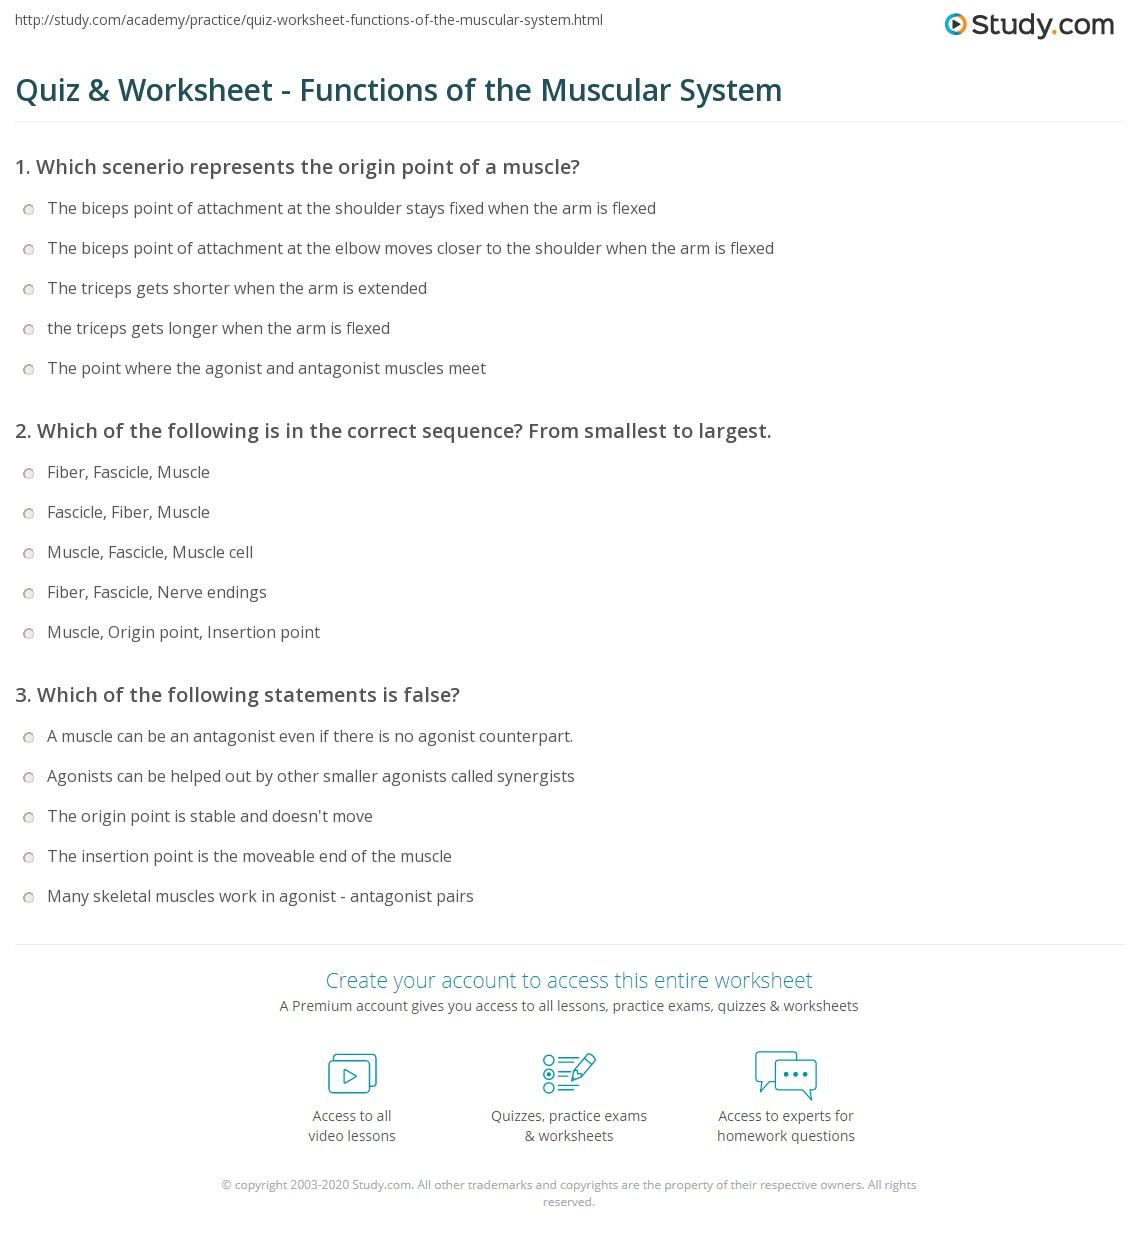 Quiz & Worksheet - Functions of the Muscular System | Study.com